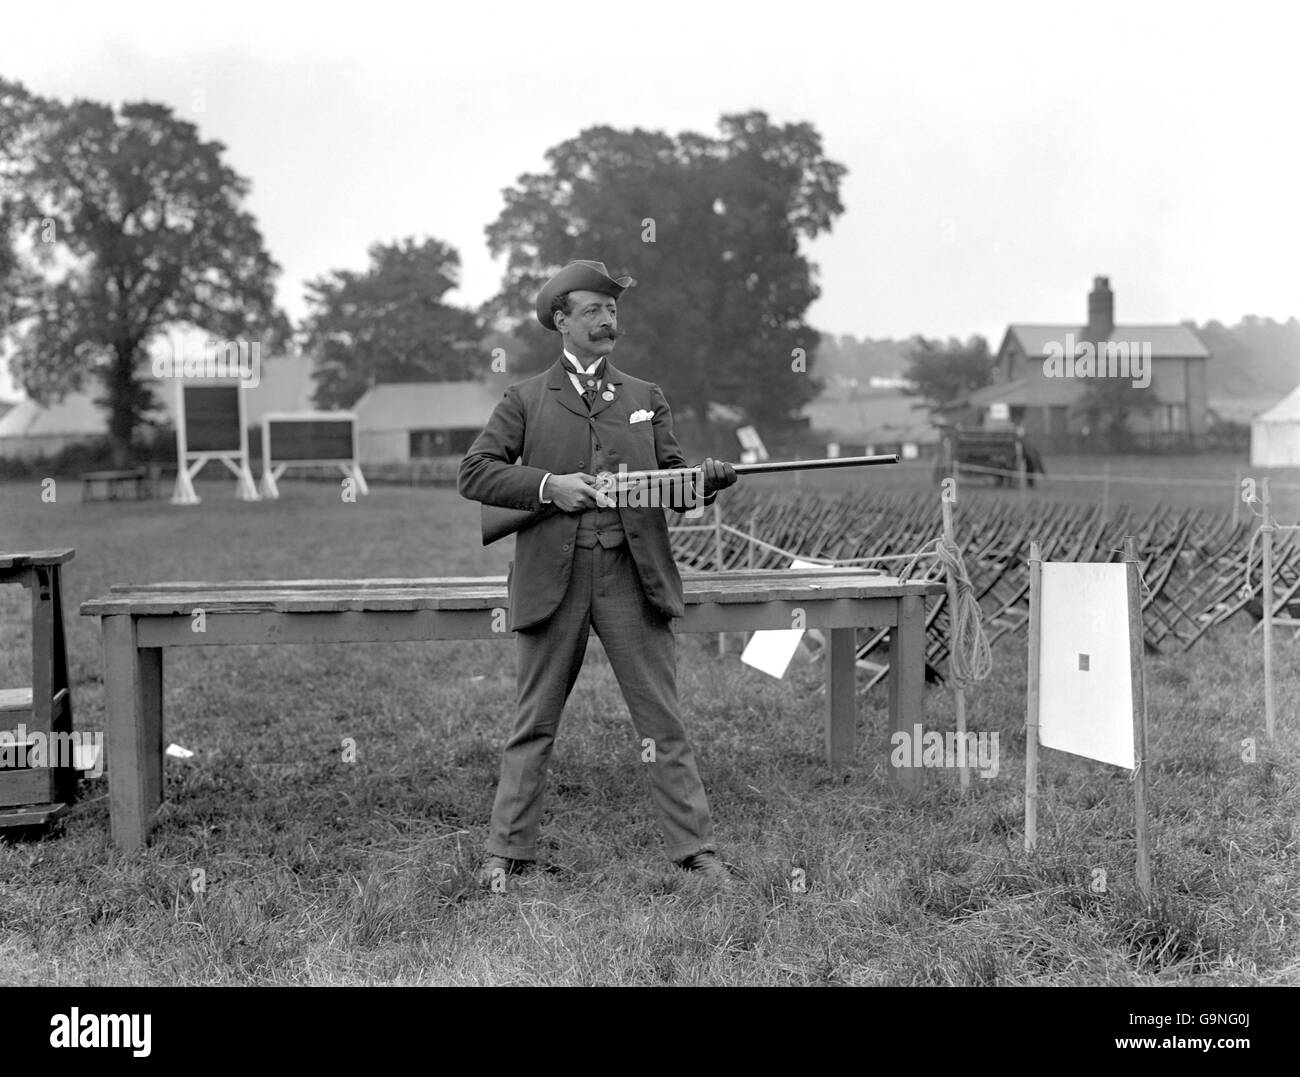 Clay Pigeon Shooting - London Olympic Games 1908 - Individual Event - Uxendon Shooting School Club - Stock Image